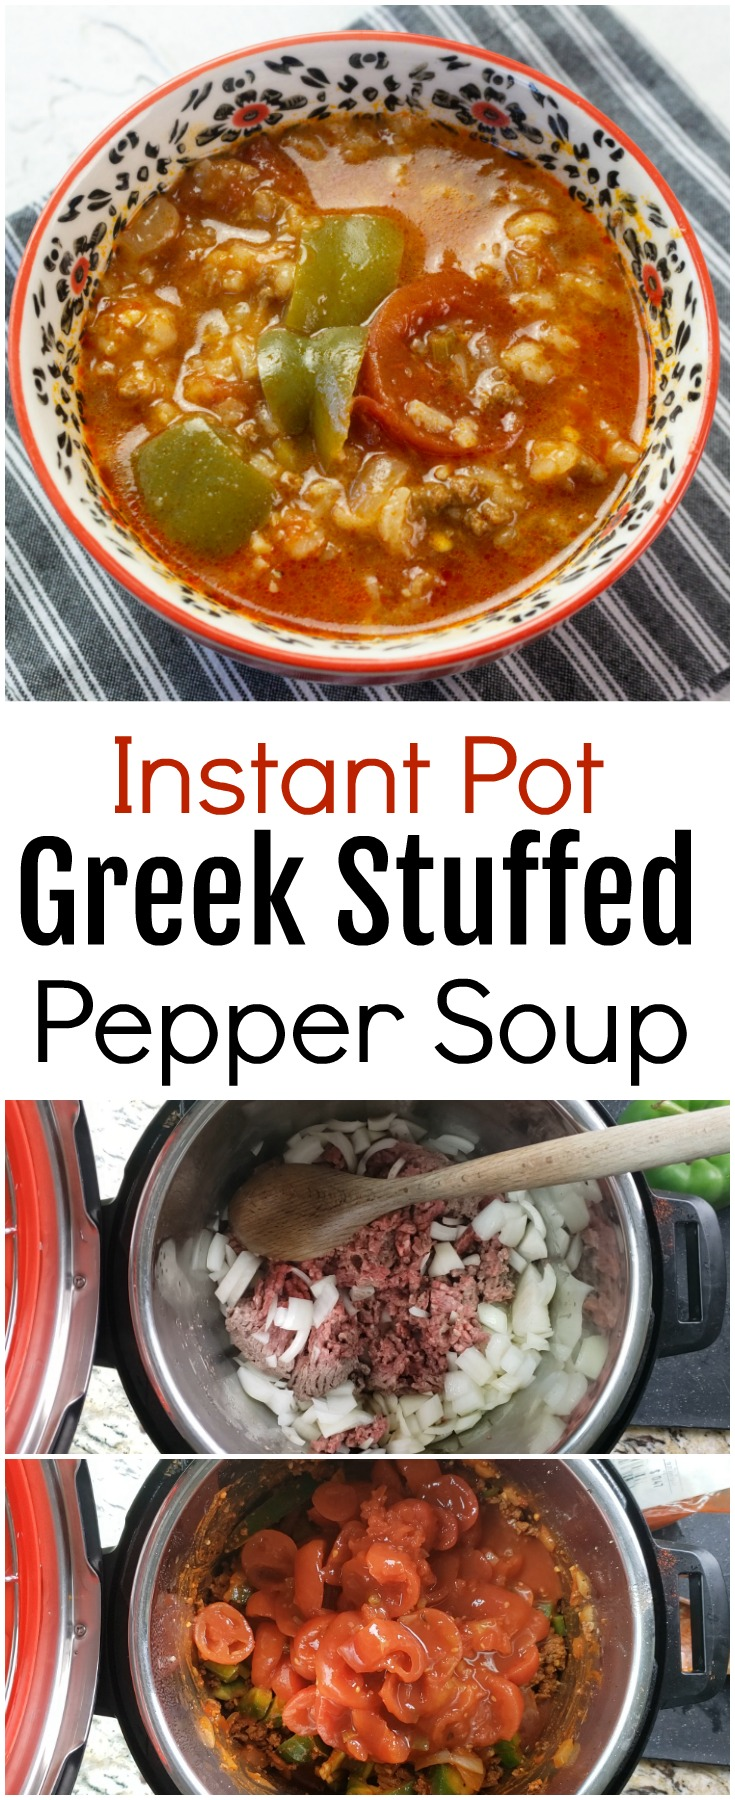 Instant Pot Greek Stuffed Pepper Soup